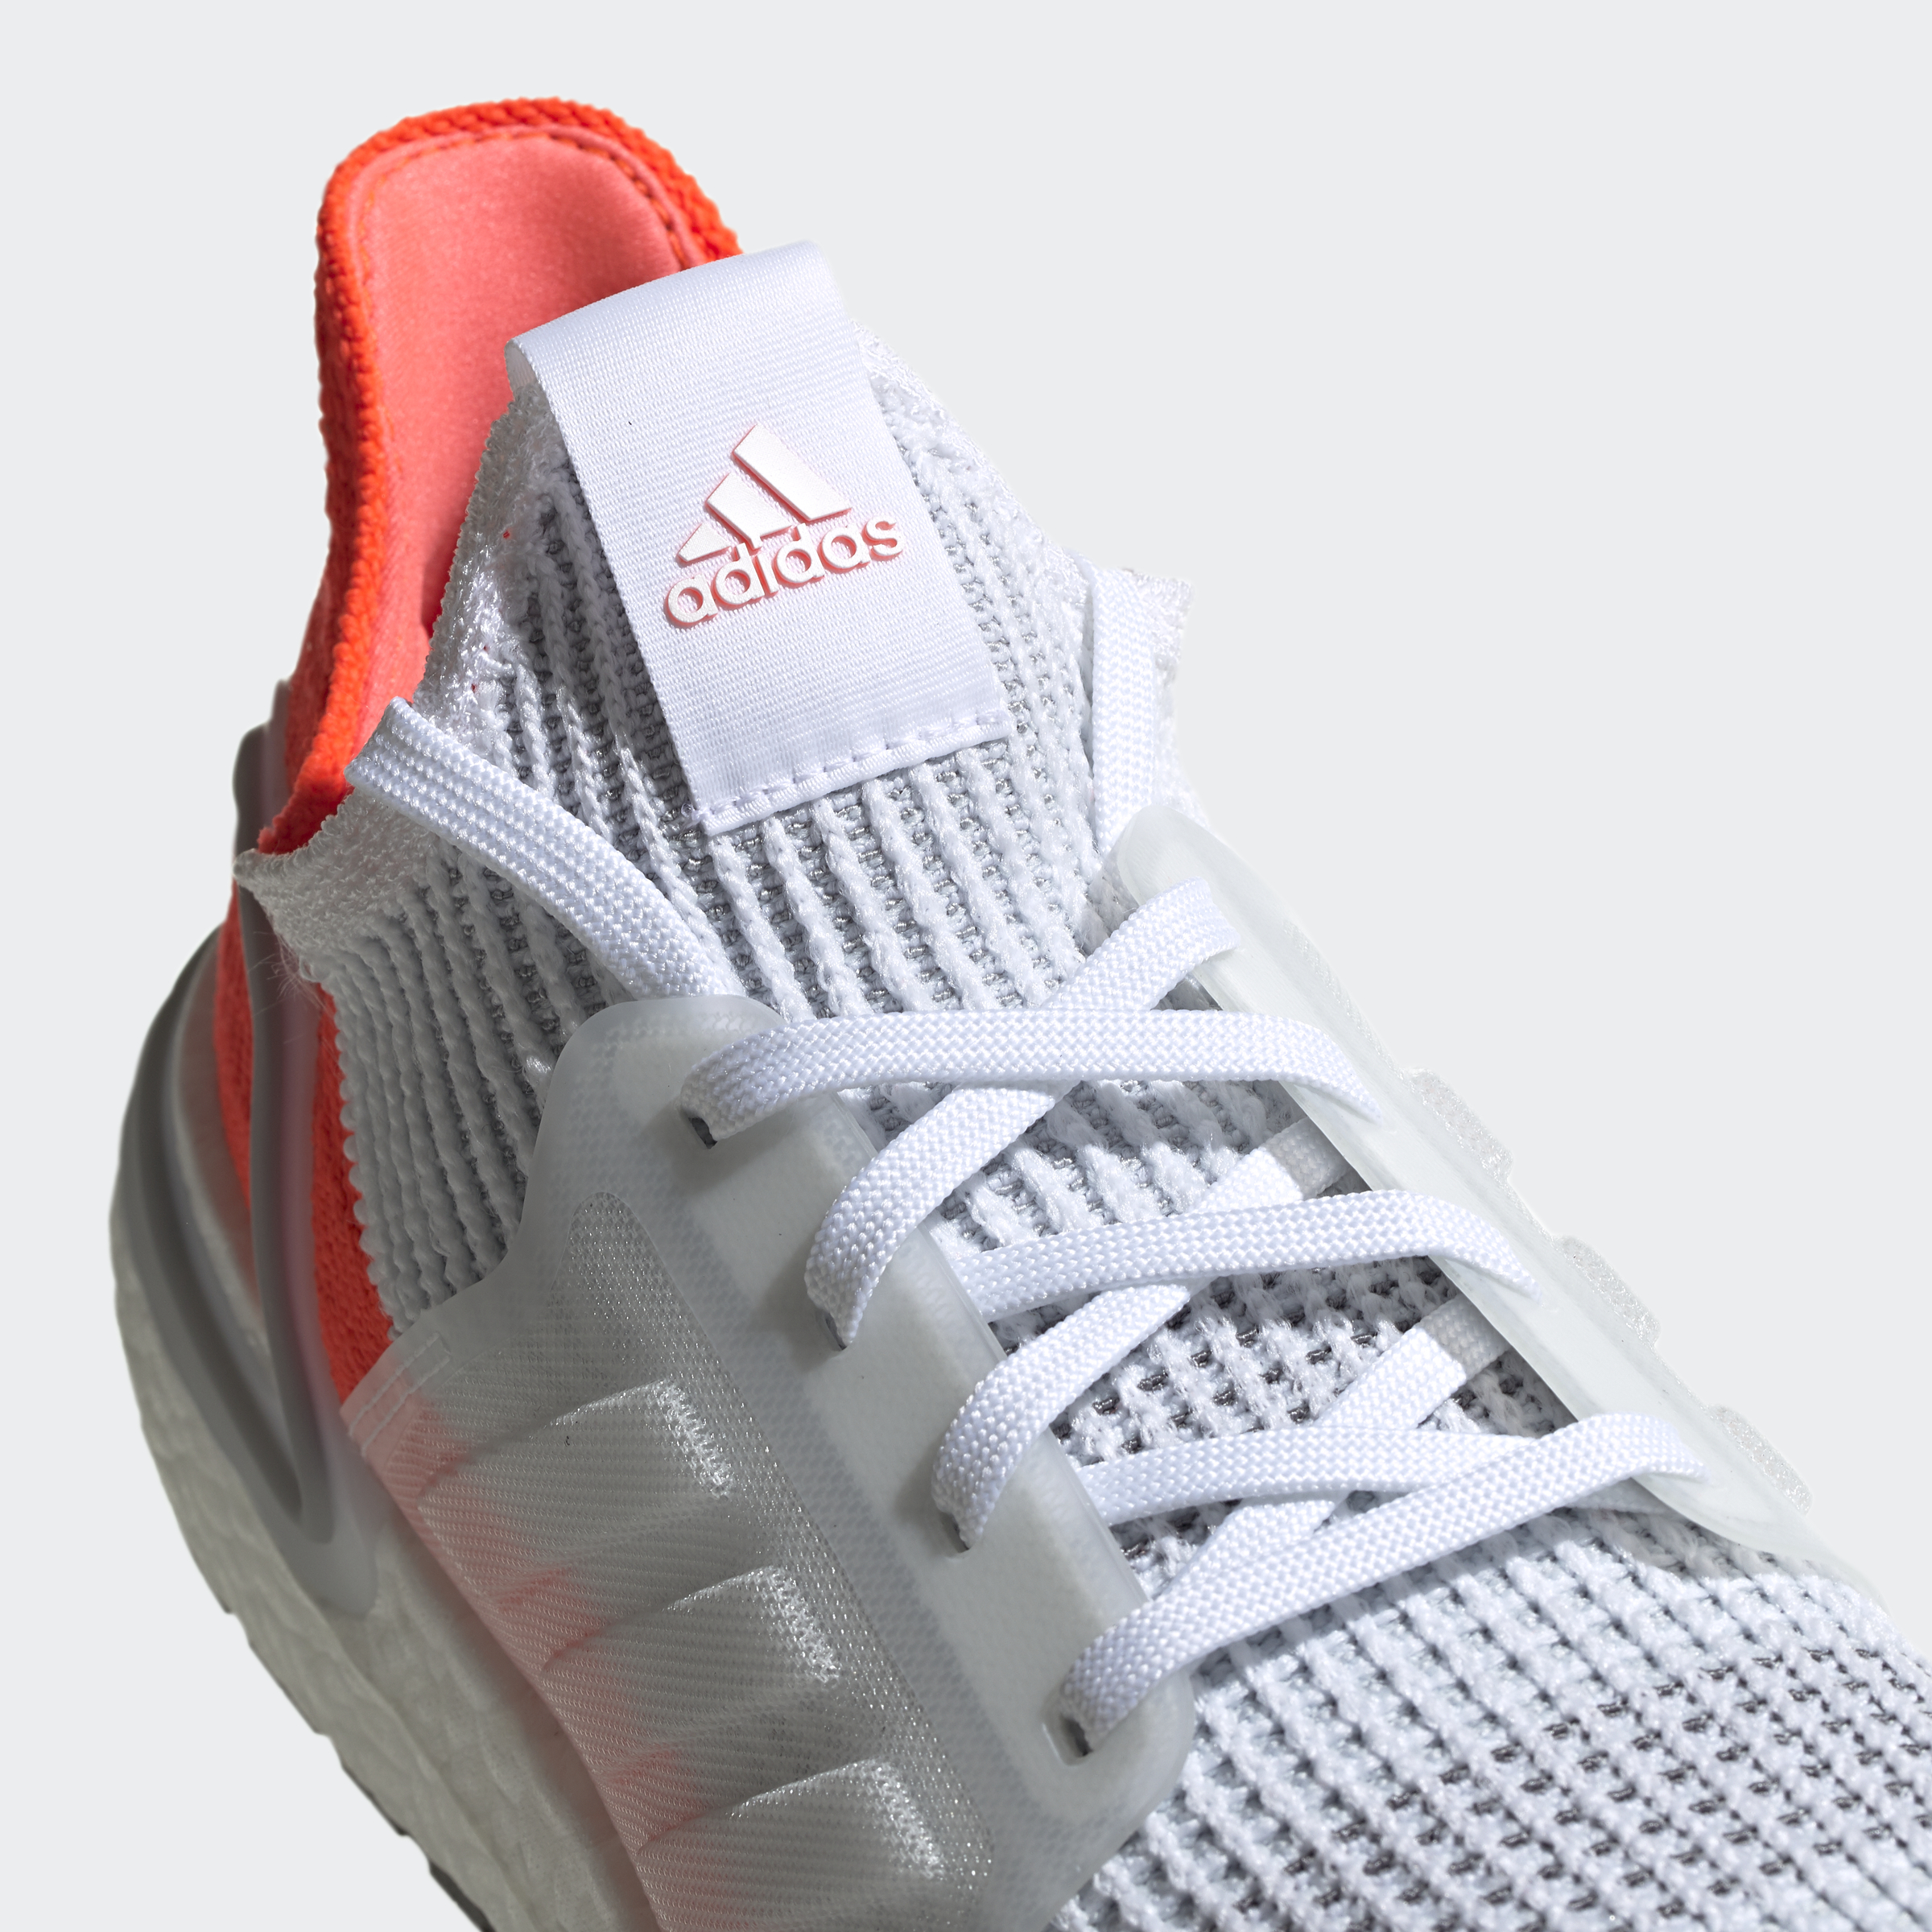 adidas-Ultraboost-19-Shoes-Athletic-amp-Sneakers thumbnail 20